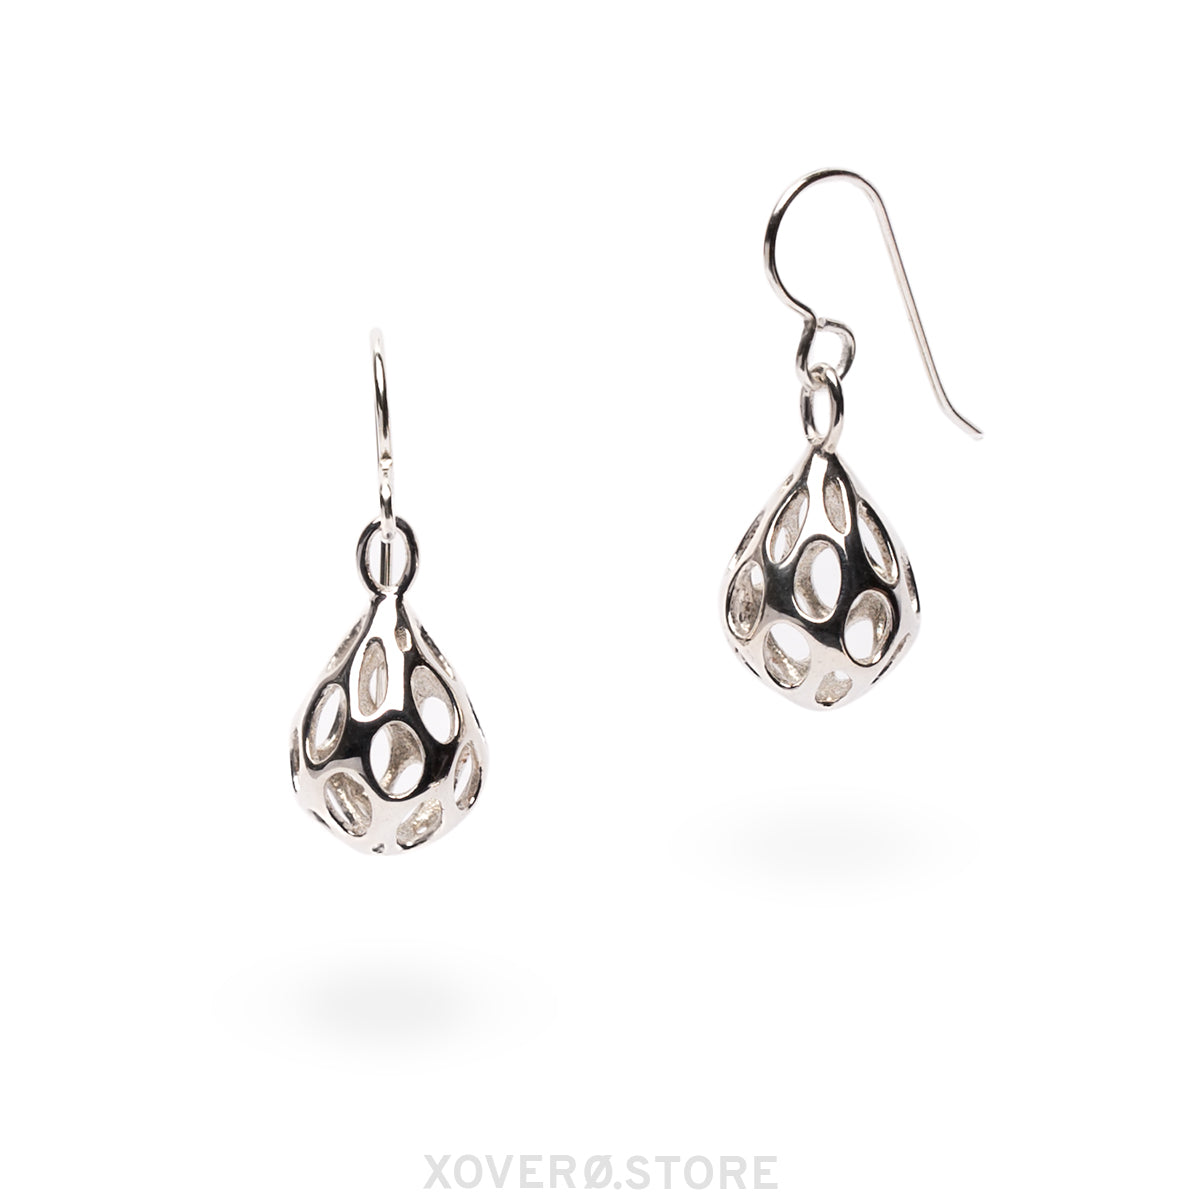 OLEA - 3d Printed Earrings - Sterling or Gold-Plated